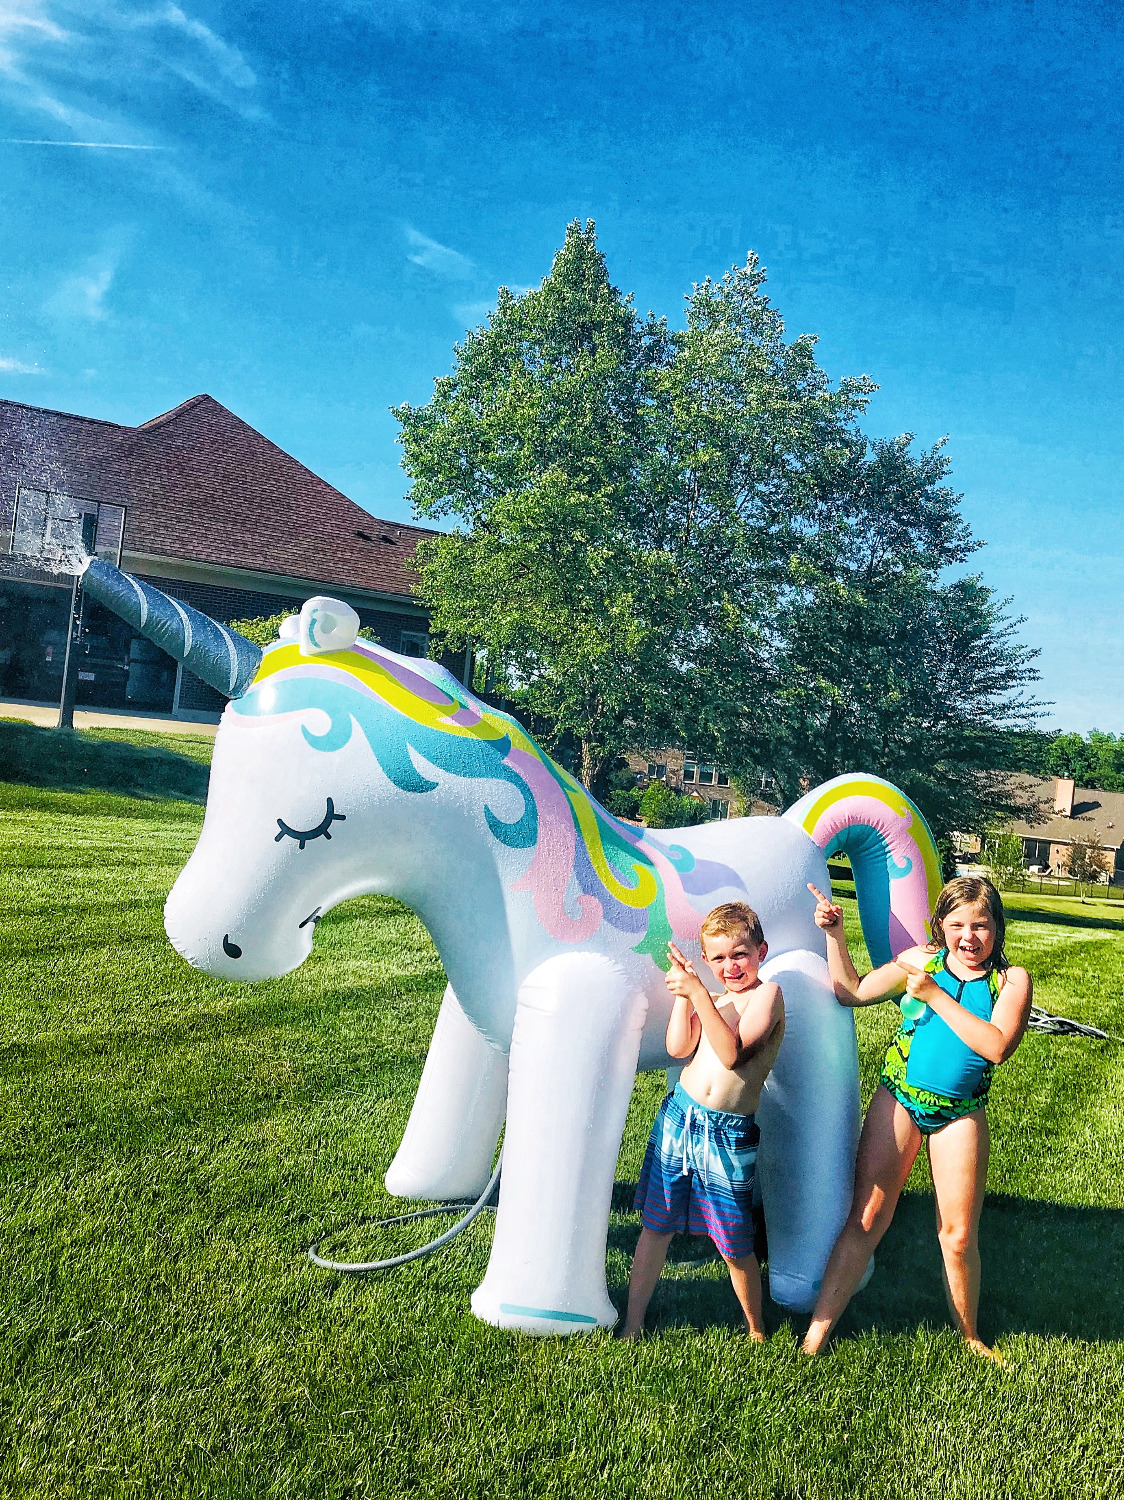 Giant Elephant Yard Sprinkler in Summer Outdoor Water Toys